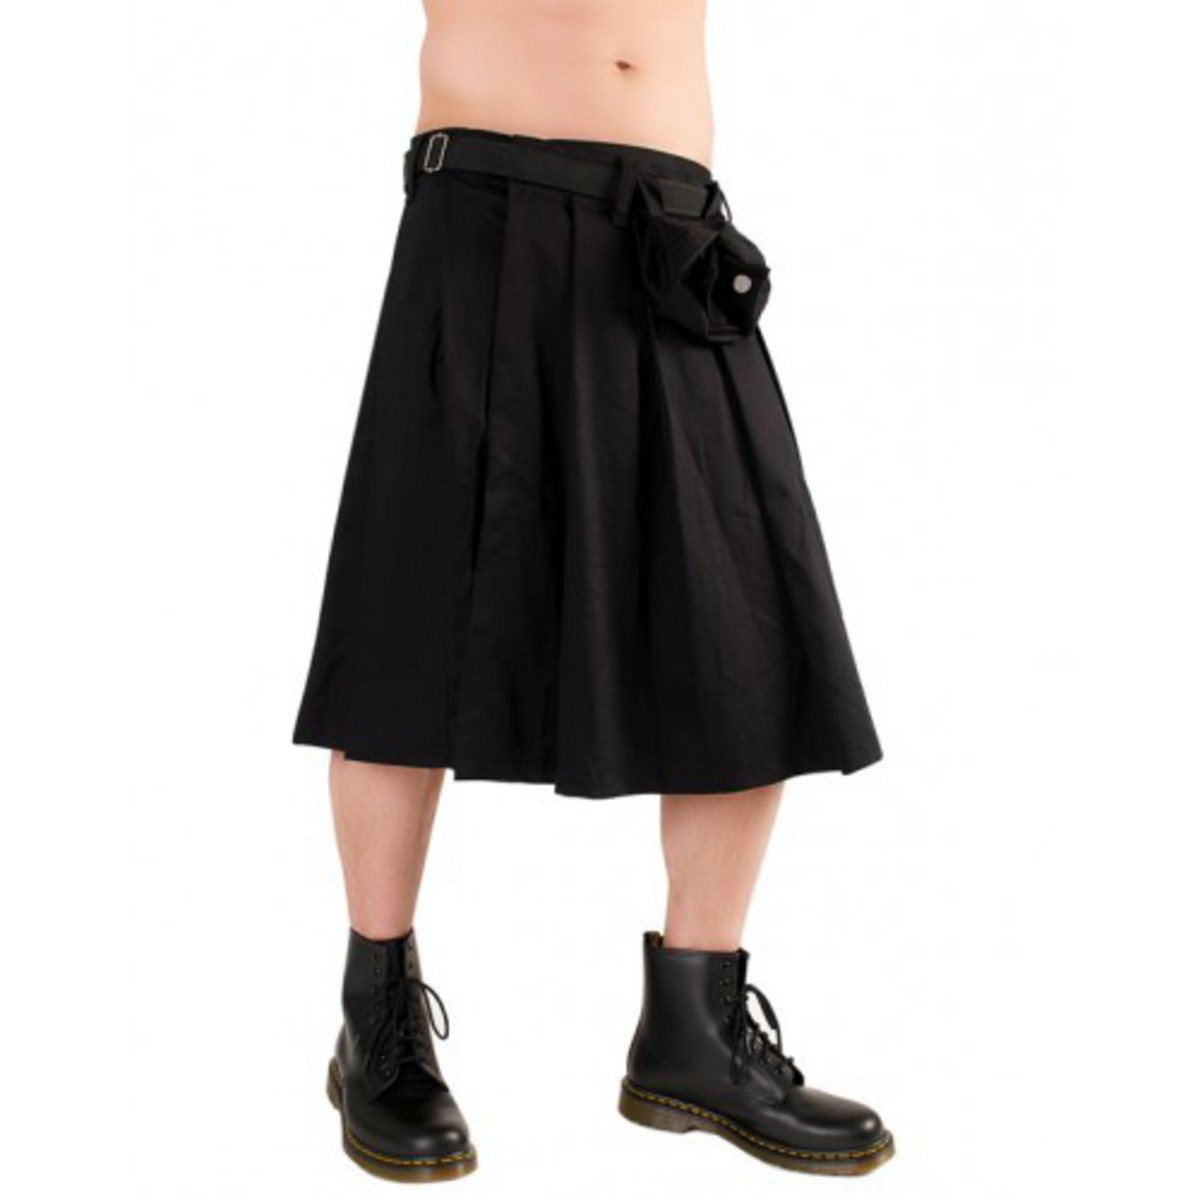 kilt Black Pistol - Short Kilt Denim Black - B-2-10-001-00 S